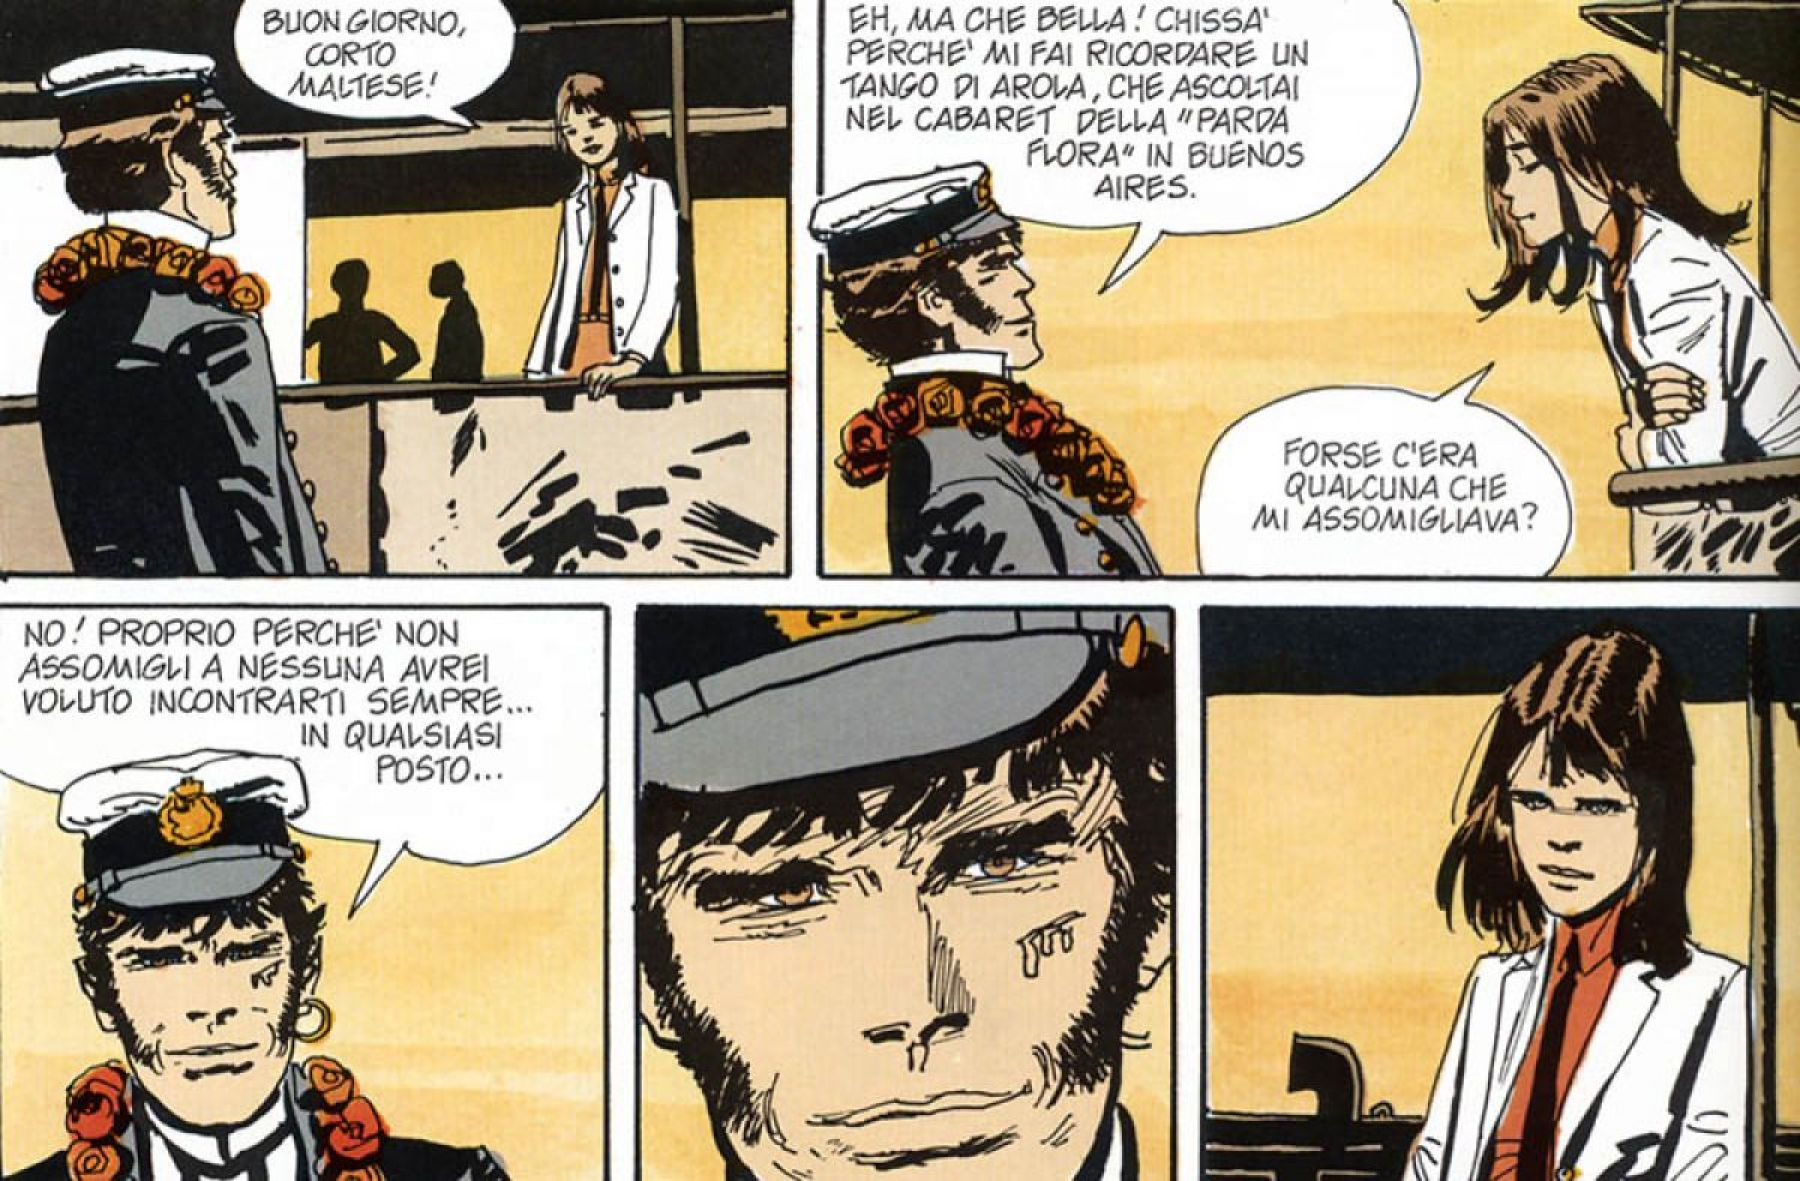 Corto Maltese, anti-eroe romantico